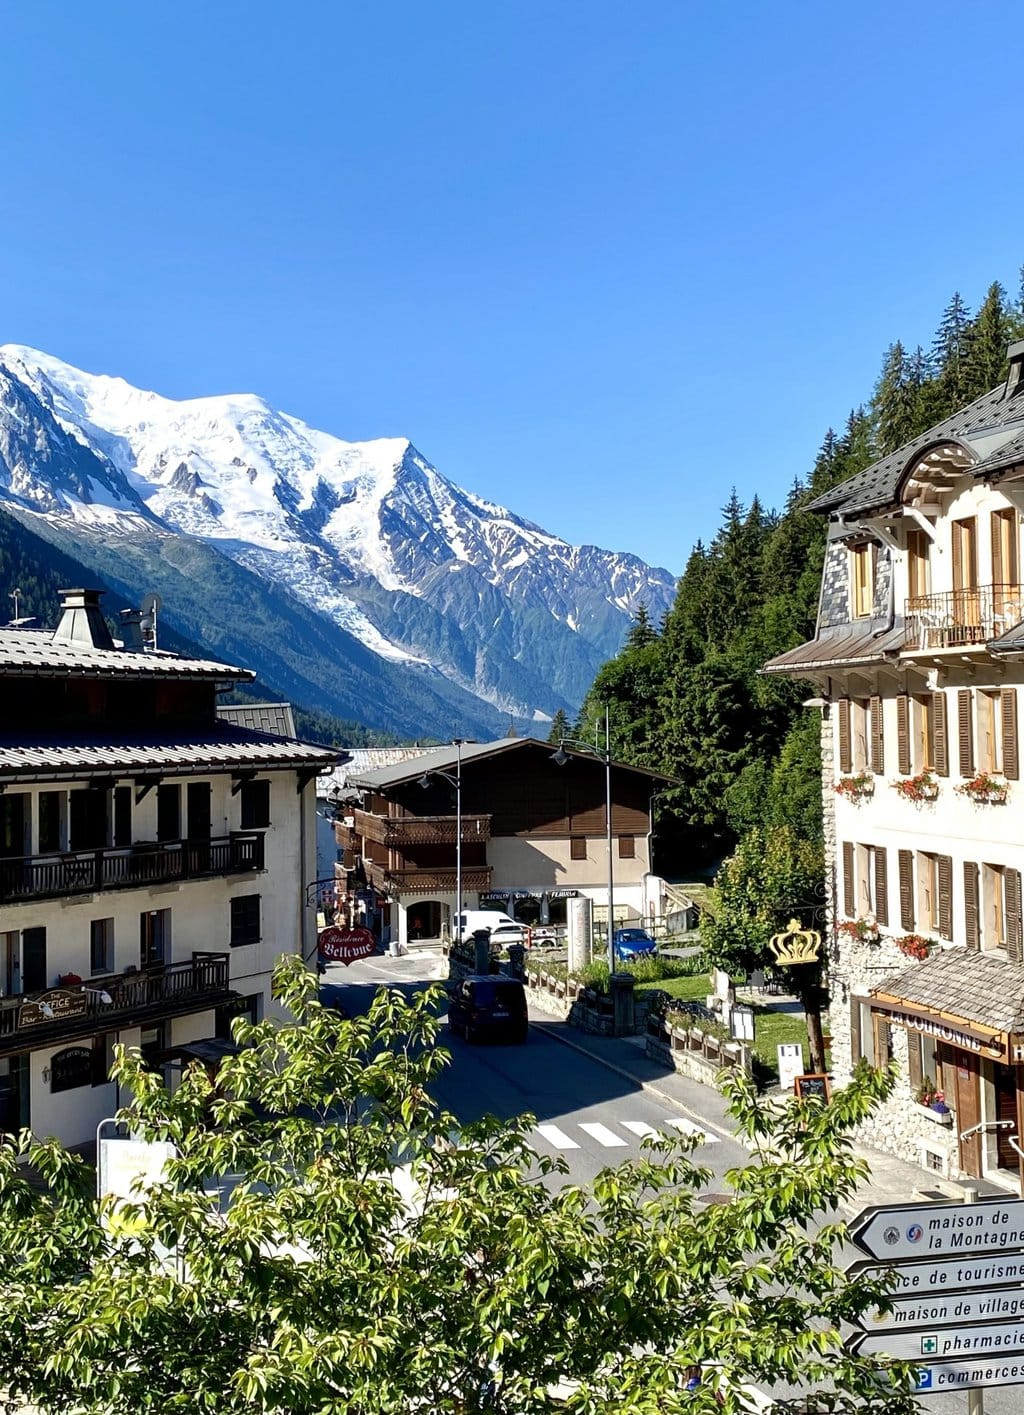 Vertical photo of the city of Argentiere, France with part of the Alps Mountains in the background.